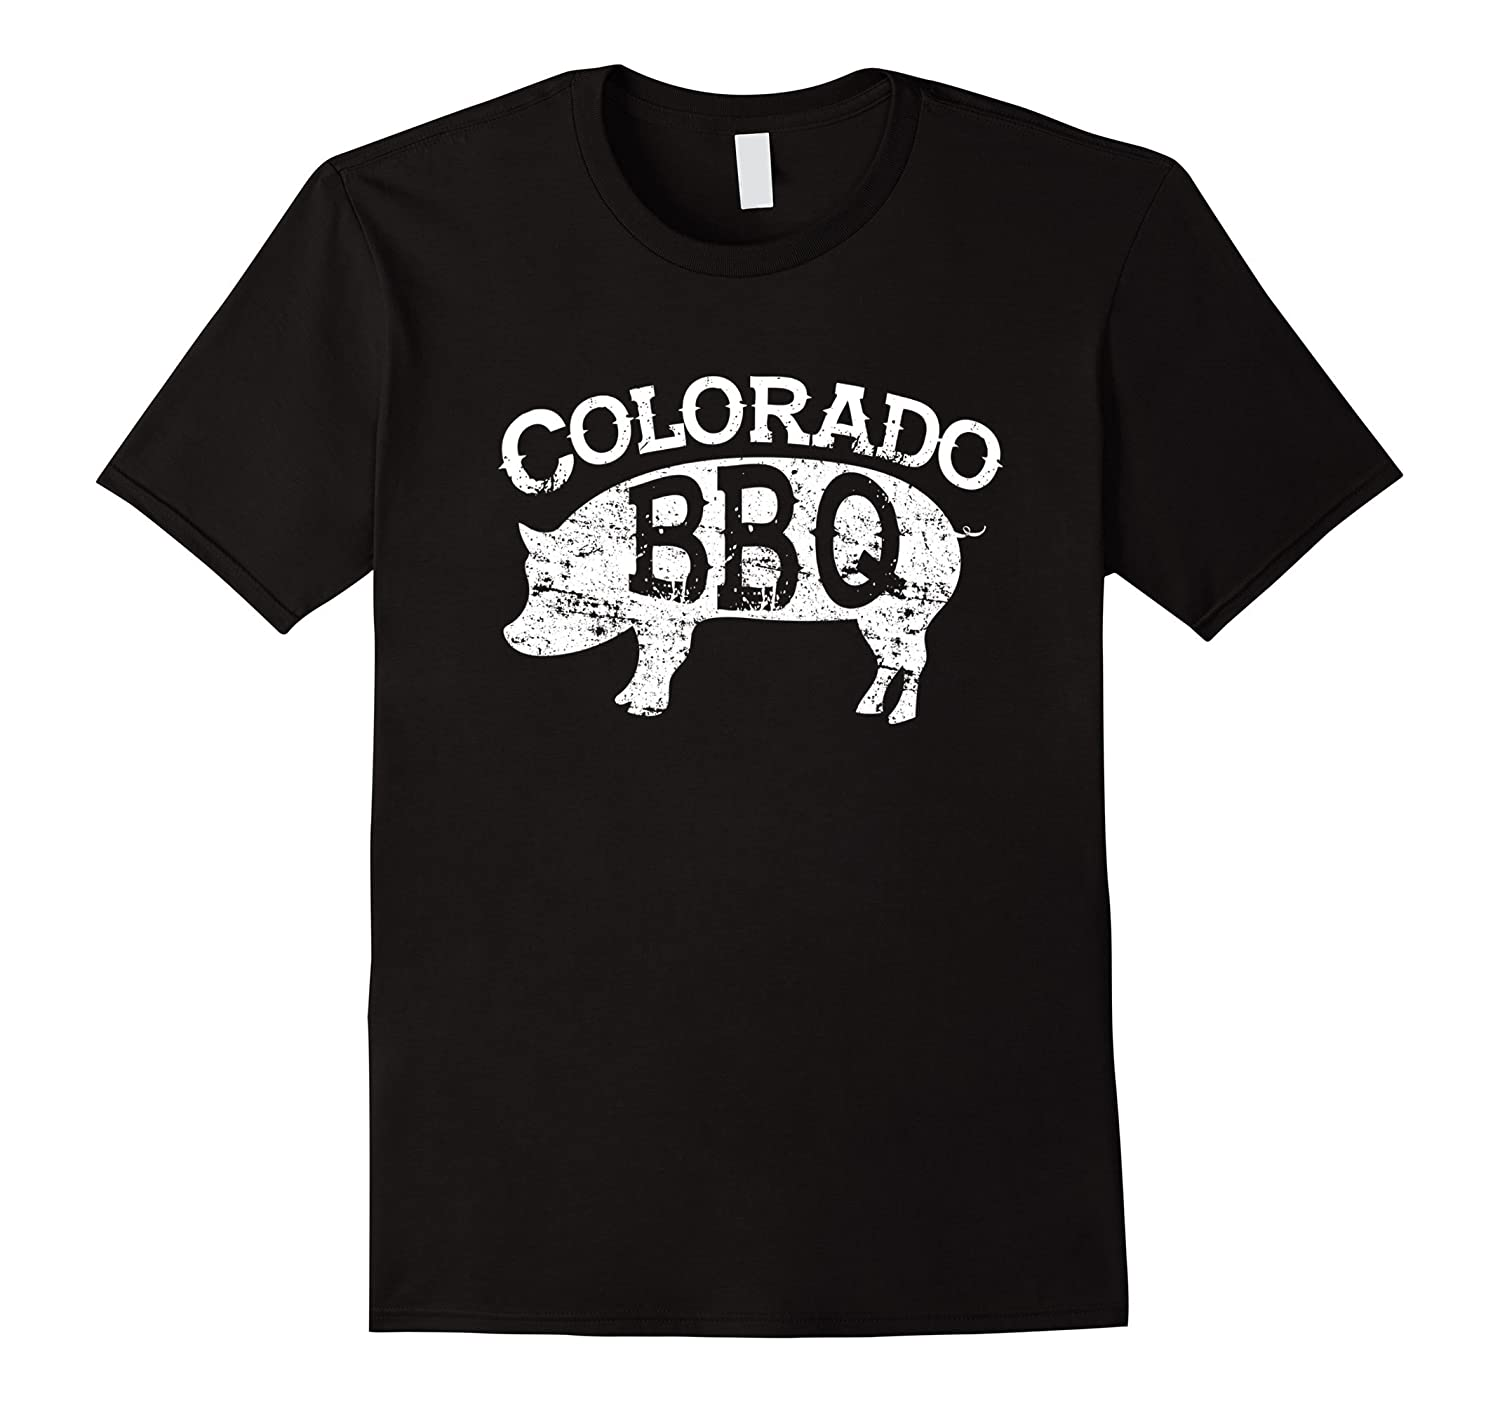 State of Colorado BBQ Shirt - Pit Barbecue Pig Grilling Pork-RT